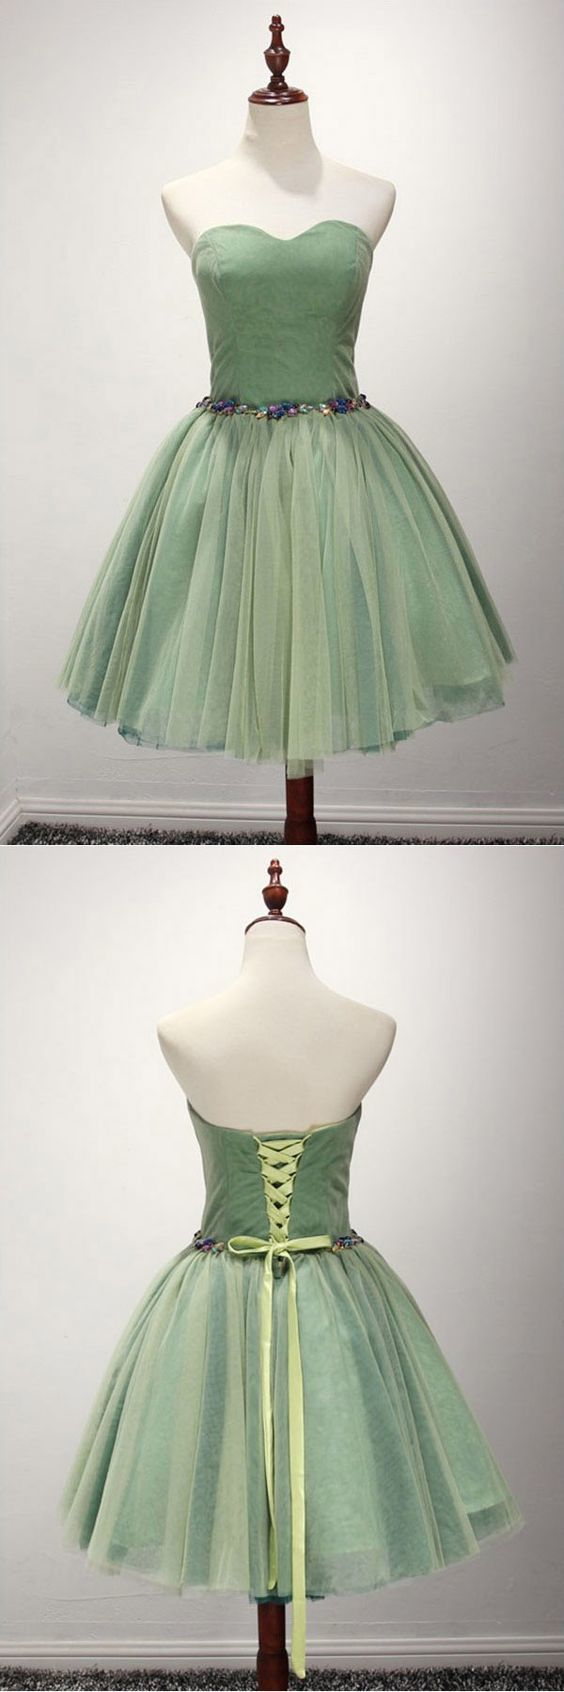 Green Ball-gown Sweetheart ,Short Tulle Homecoming Dress With Beading,Sexy Party Dress,Custom Made Evening Dress